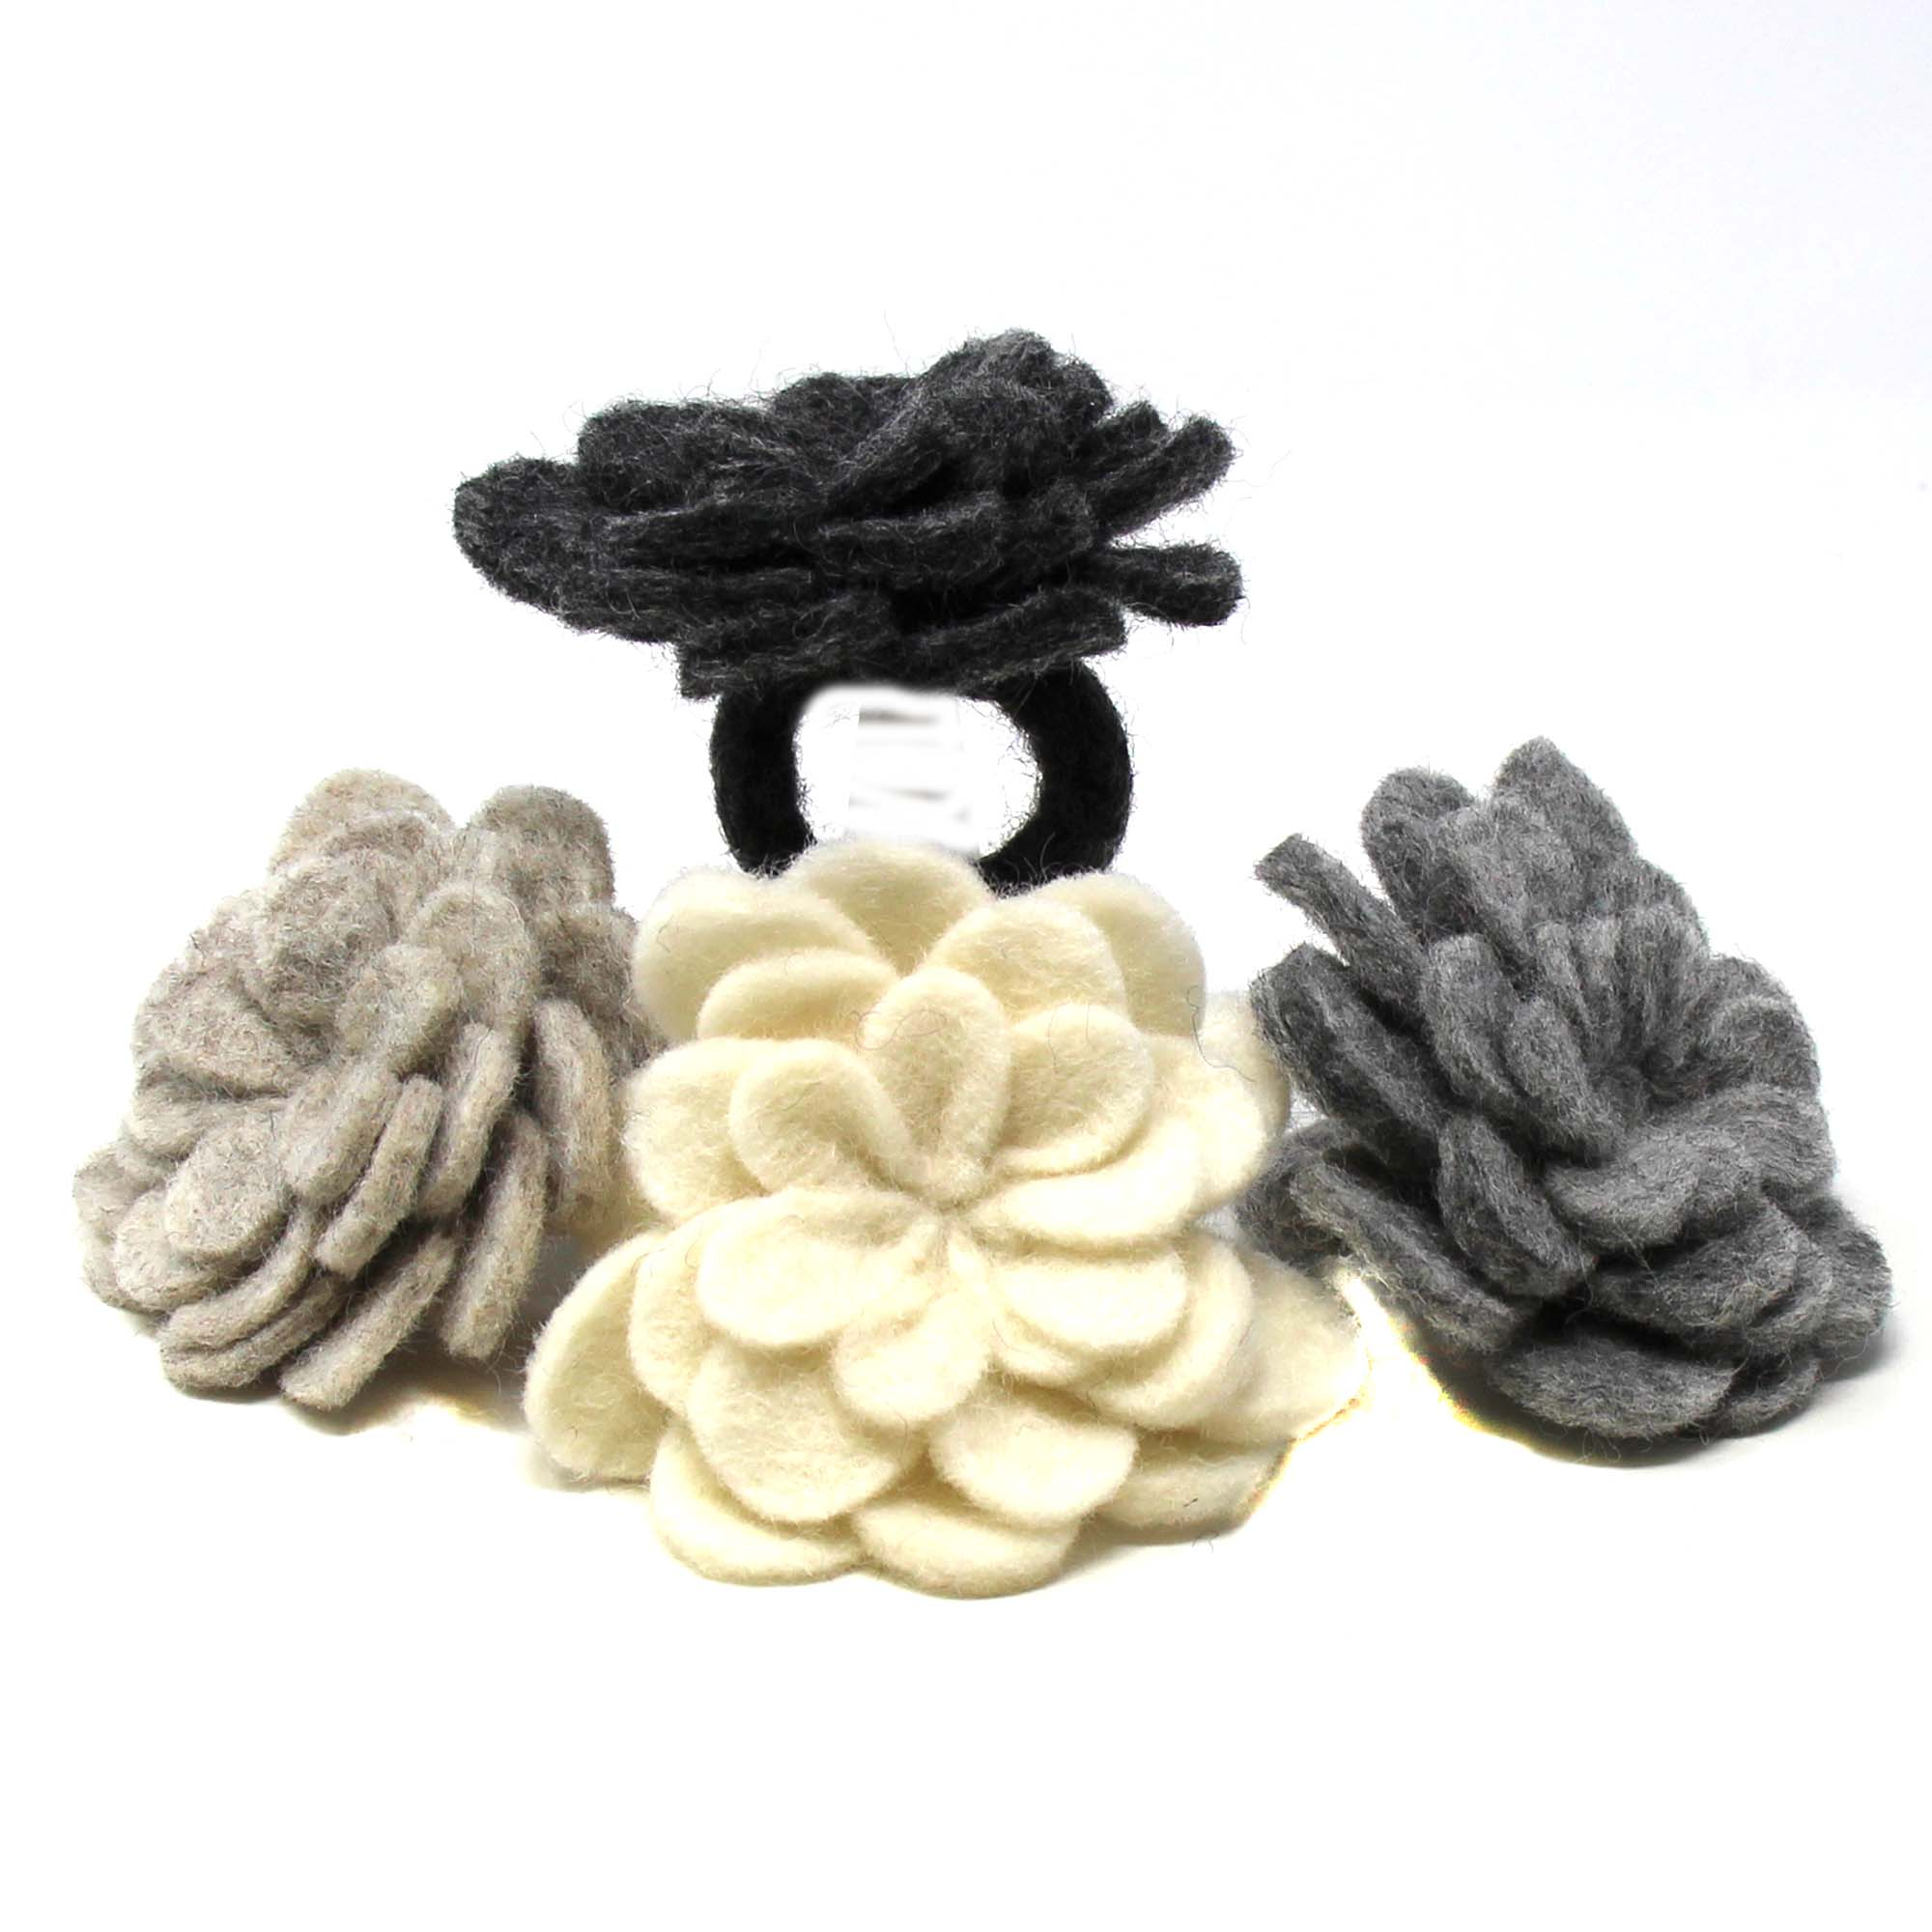 Set of 4 Napkin Rings, Assorted Neutral Color Zinnias